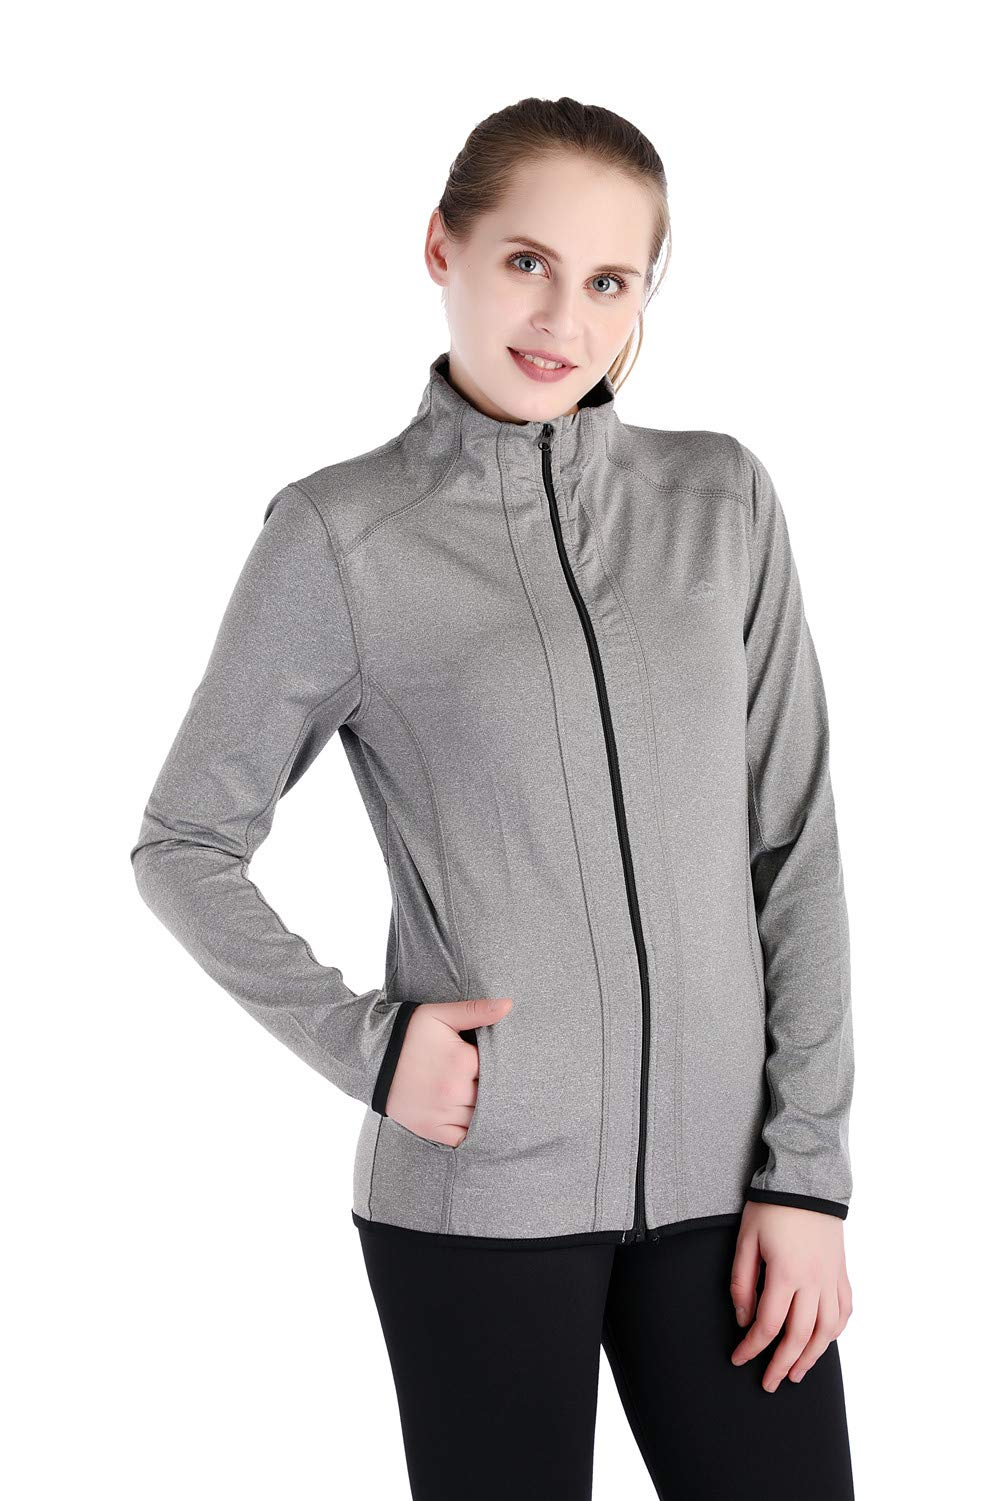 Dolcevida Women's Full Zip Long Sleeves Running Activewear Yoga Track Jackets (Grey, M)